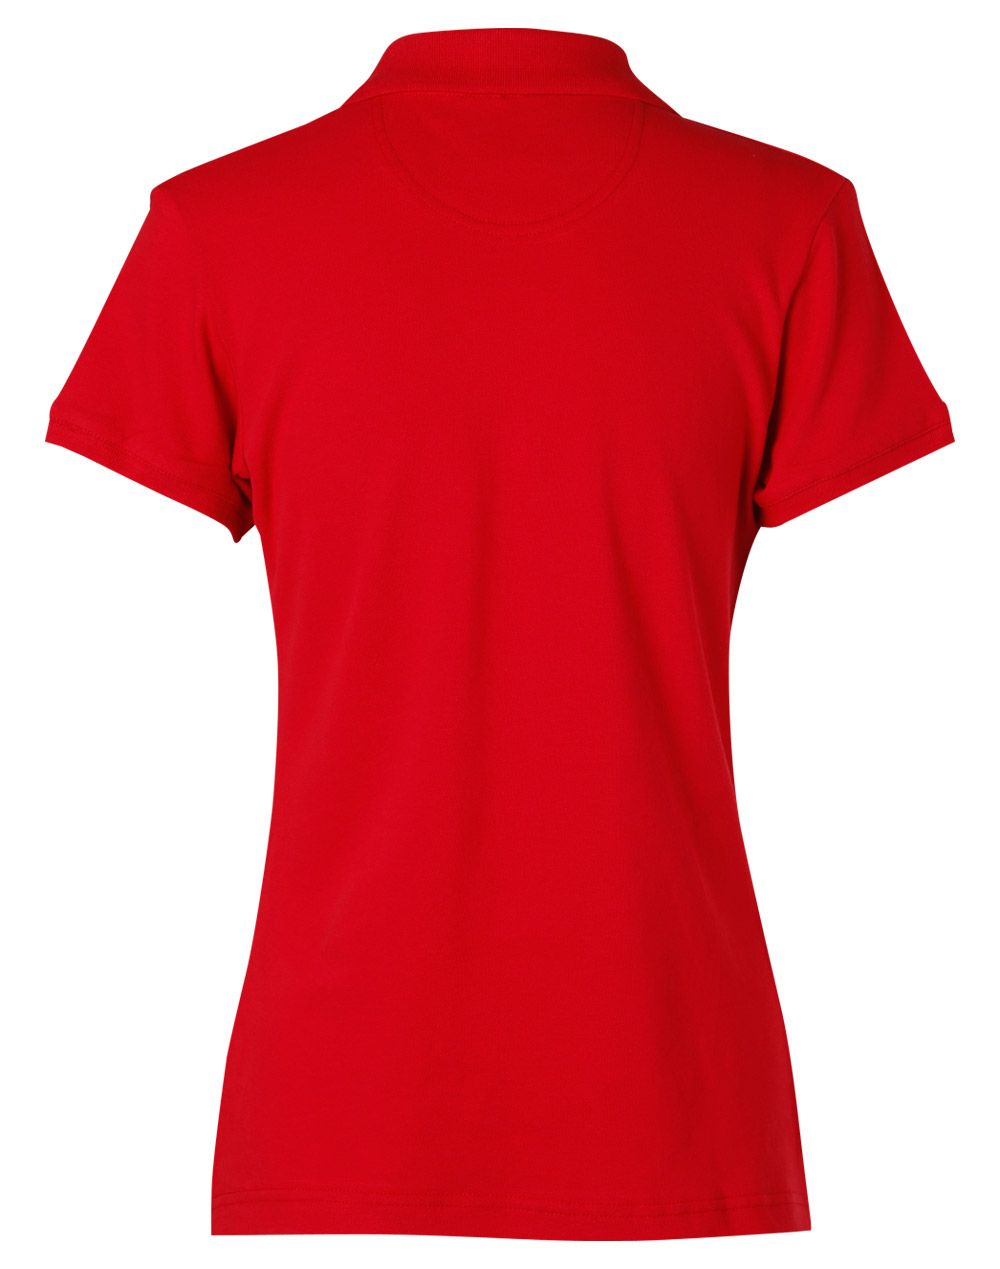 https://s3-ap-southeast-1.amazonaws.com/ws-imgs/POLOSHIRTS/PS40_Red_back.jpg